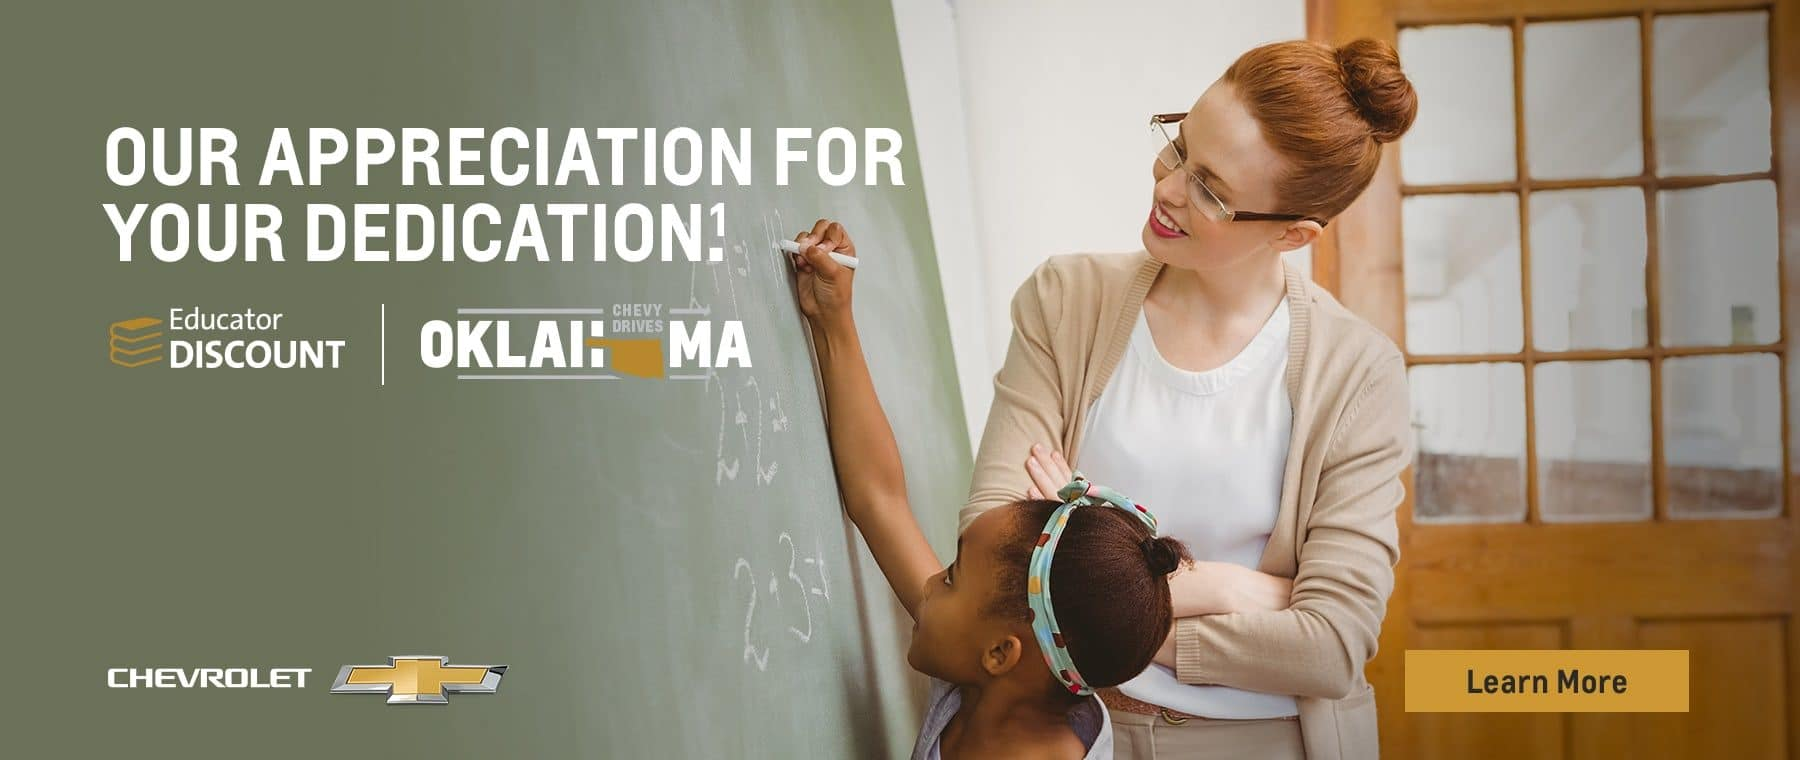 Our appreciation for your education. Educator Discount. Chevy Drives Oklahoma.